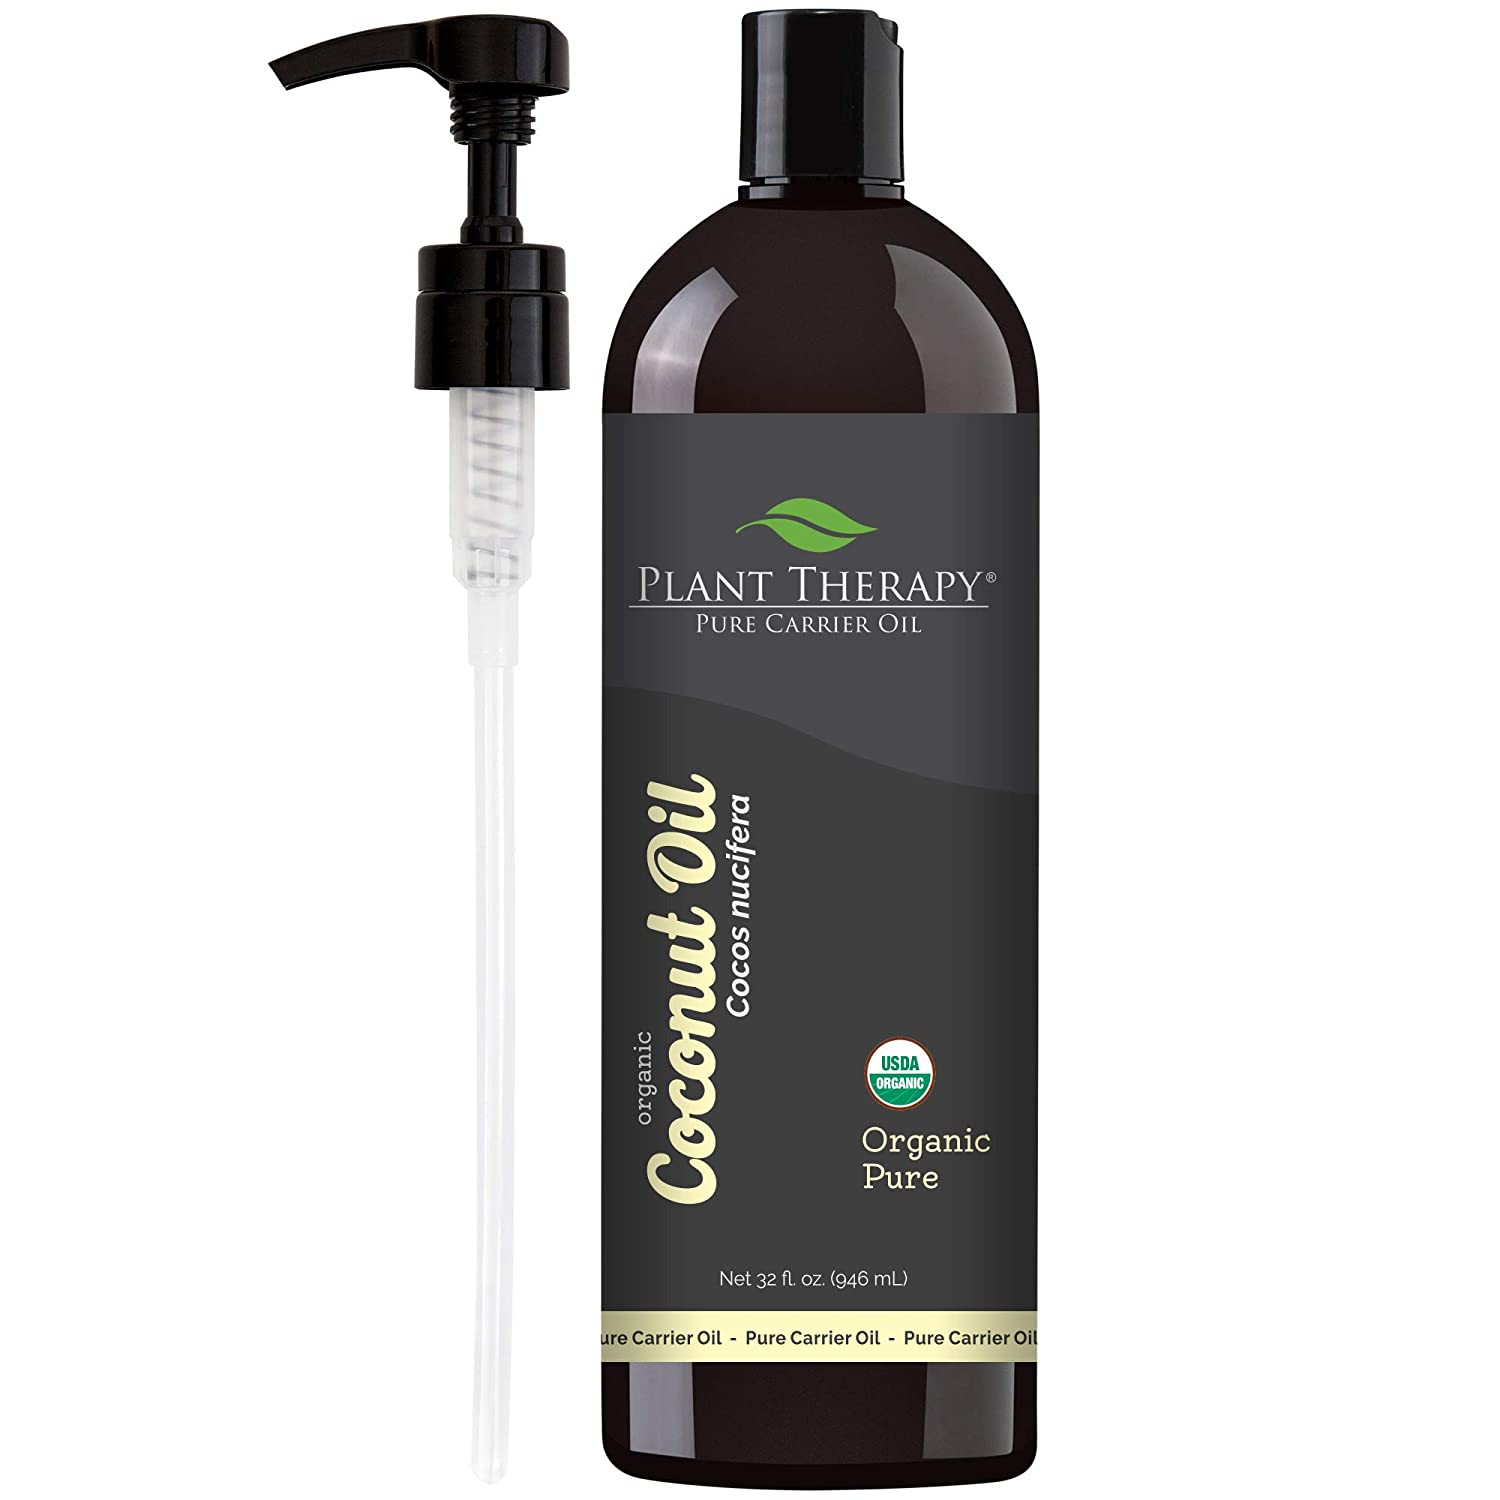 Plant Therapy Essential Oils Organic Fractionated Coconut Oil For Skin, Hair, Body 100% Pure, USDA Certified Organic, Natural Moisturizer, Massage & Aromatherapy Liquid Carrier Oil 32 oz, Pump In